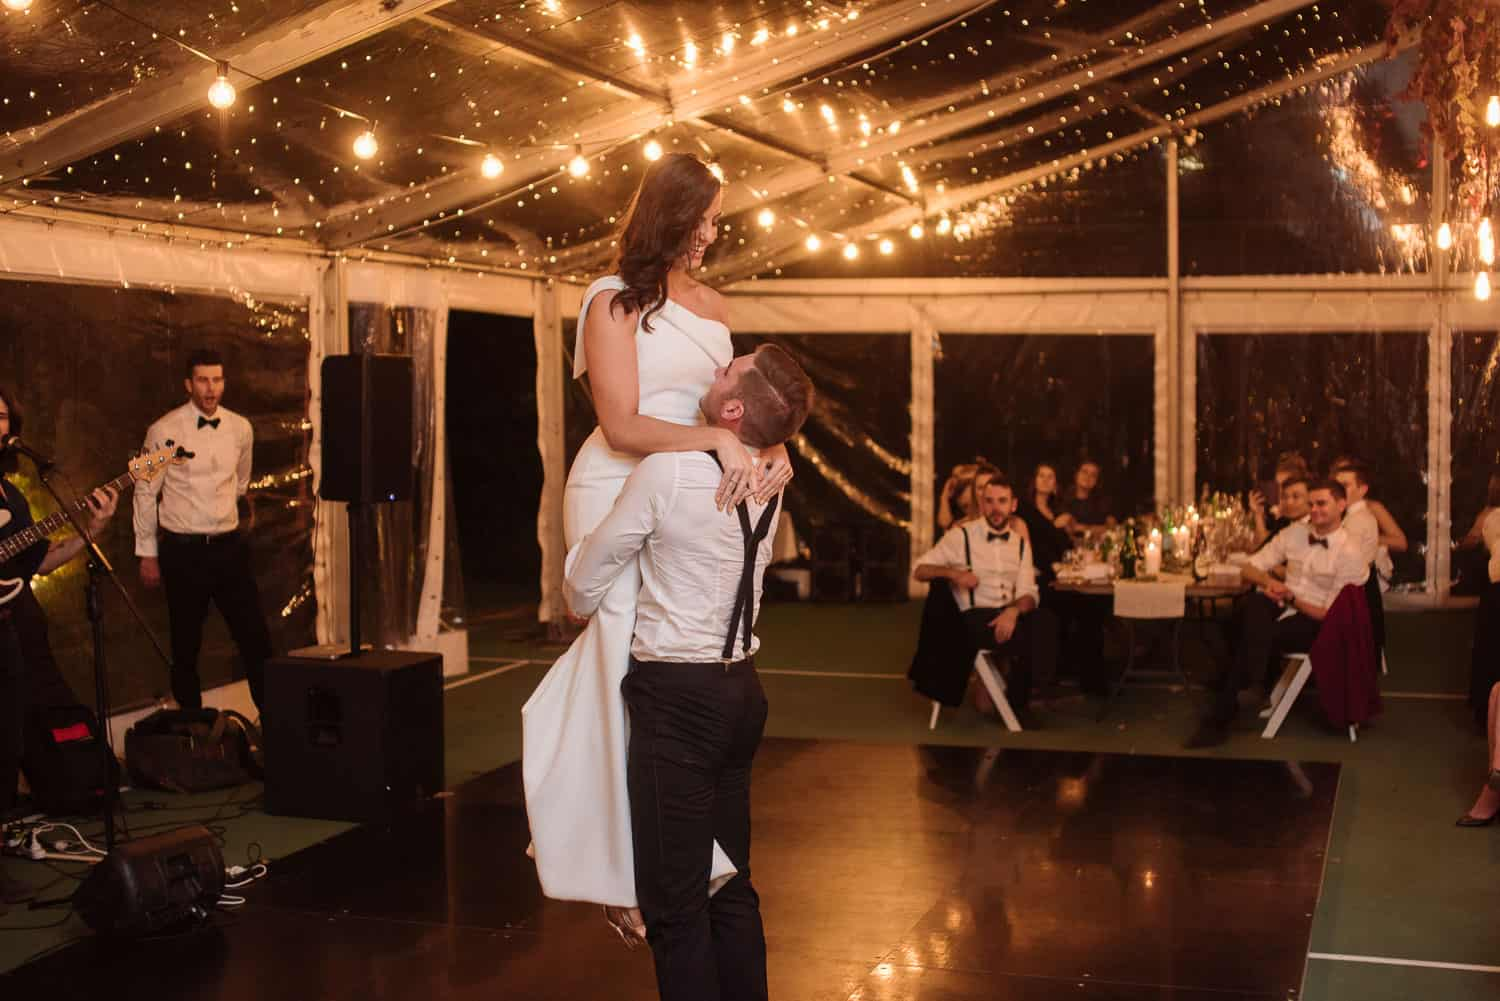 Groom lifts bride during their first dance